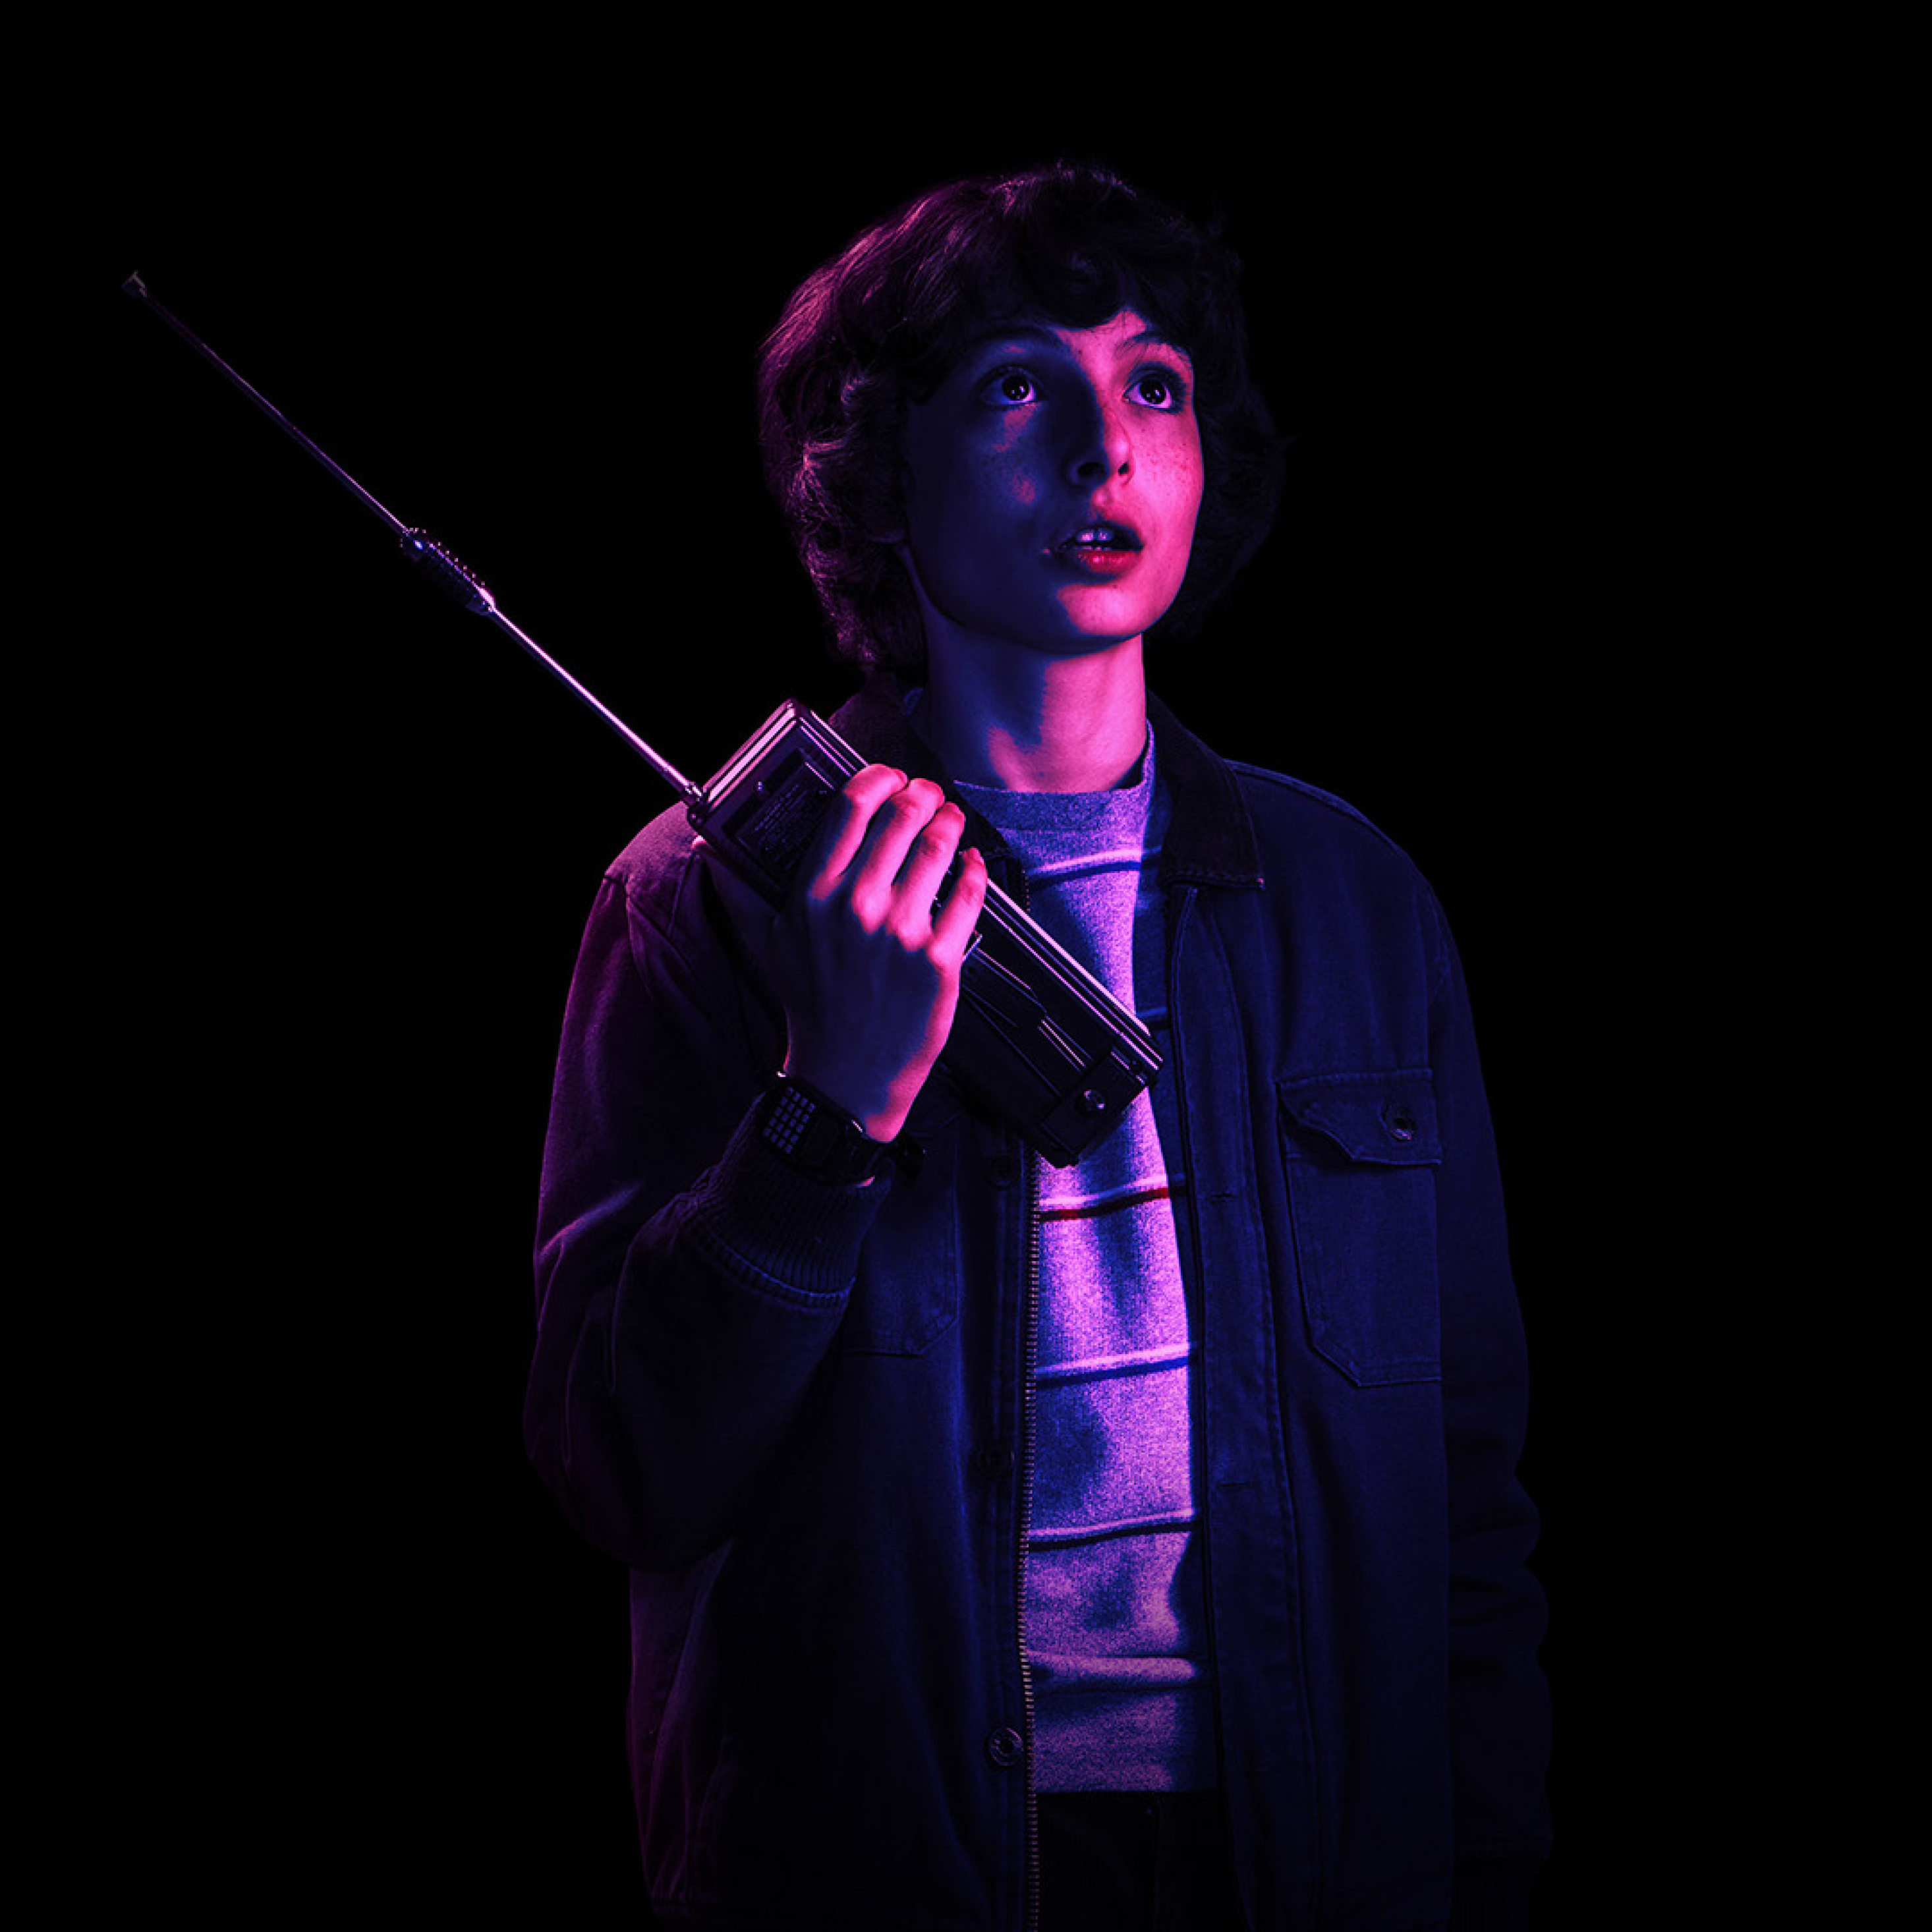 Tesla Model 3 4k Hd Desktop Wallpaper For 4k Ultra Hd Tv: Download Finn Wolfhard In Stranger Things 2932x2932